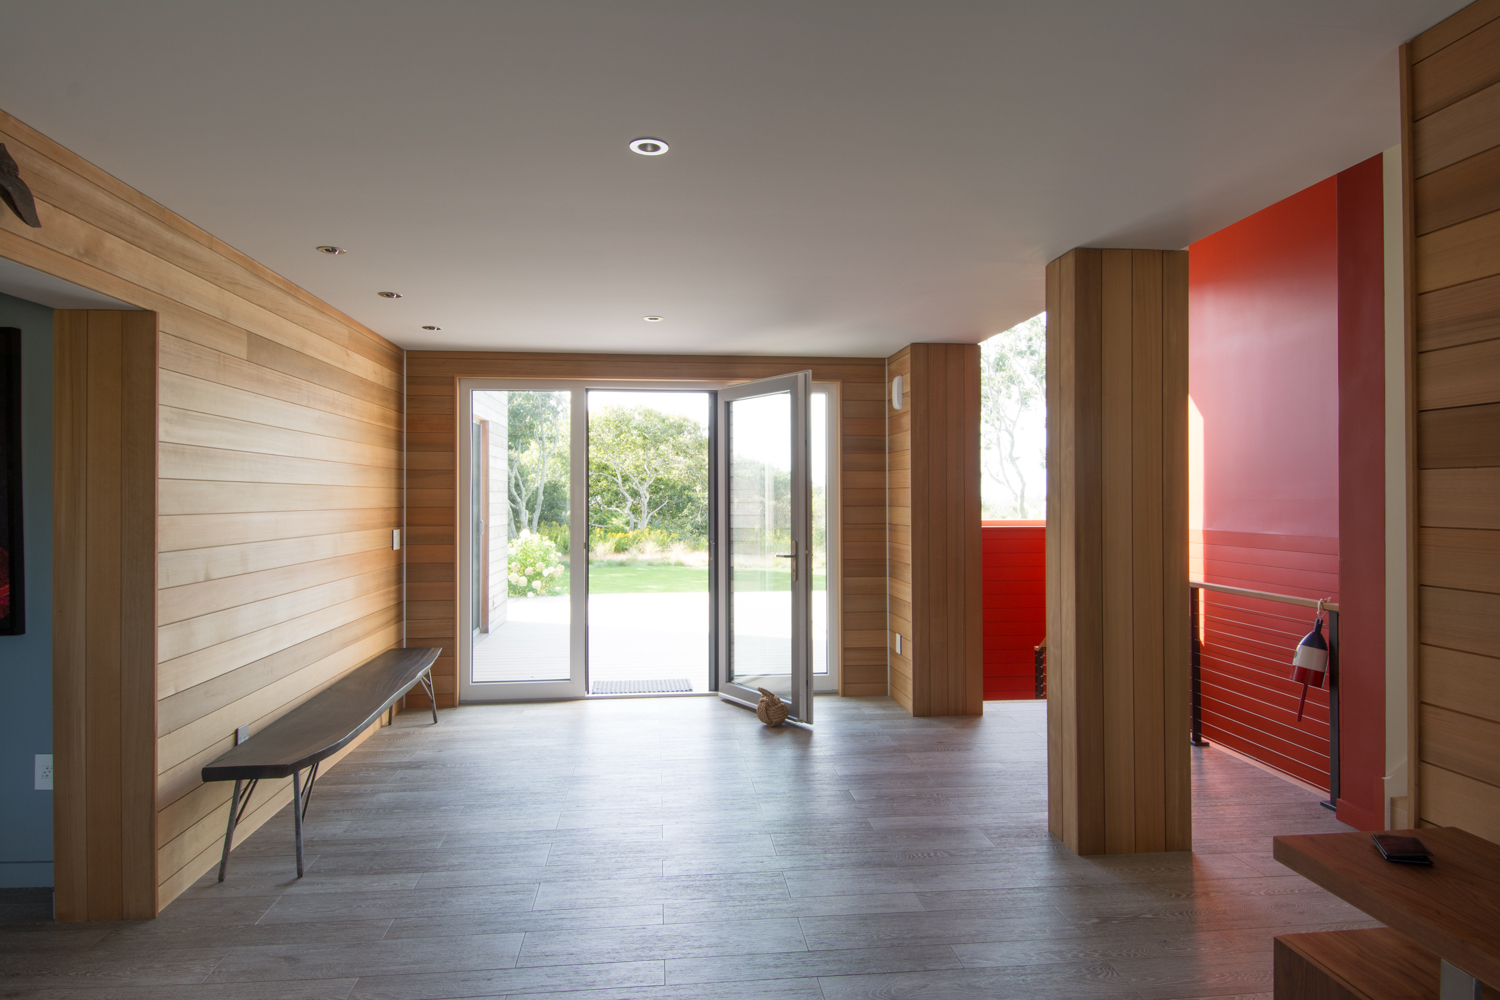 Interior hallway with wood paneling and bench